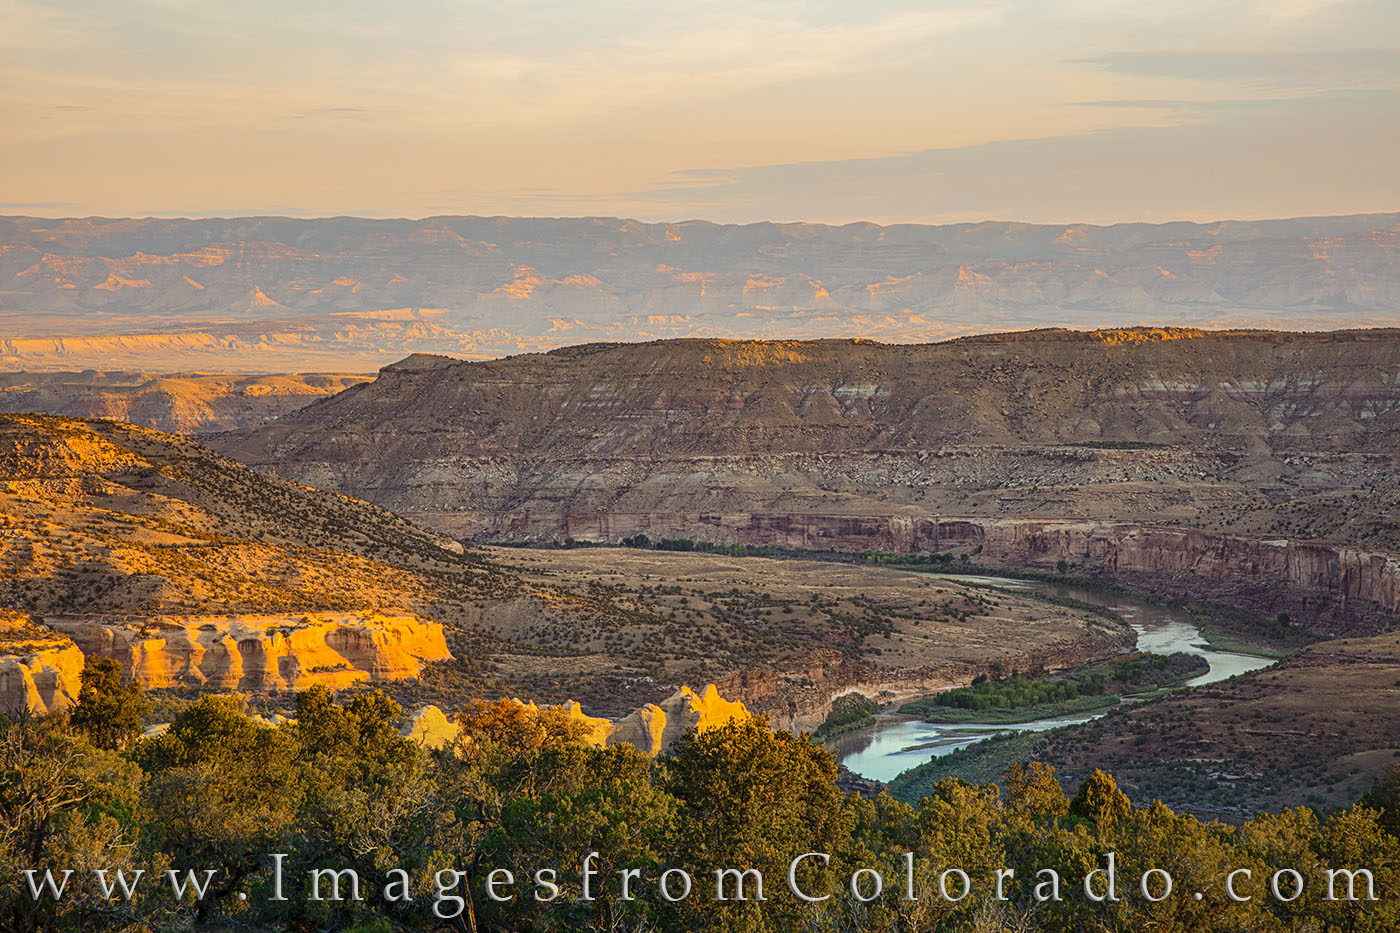 From high above the Colorado River from the top shelf of Rattle Snake Canyon, this is the majestic view of the Colorado River...